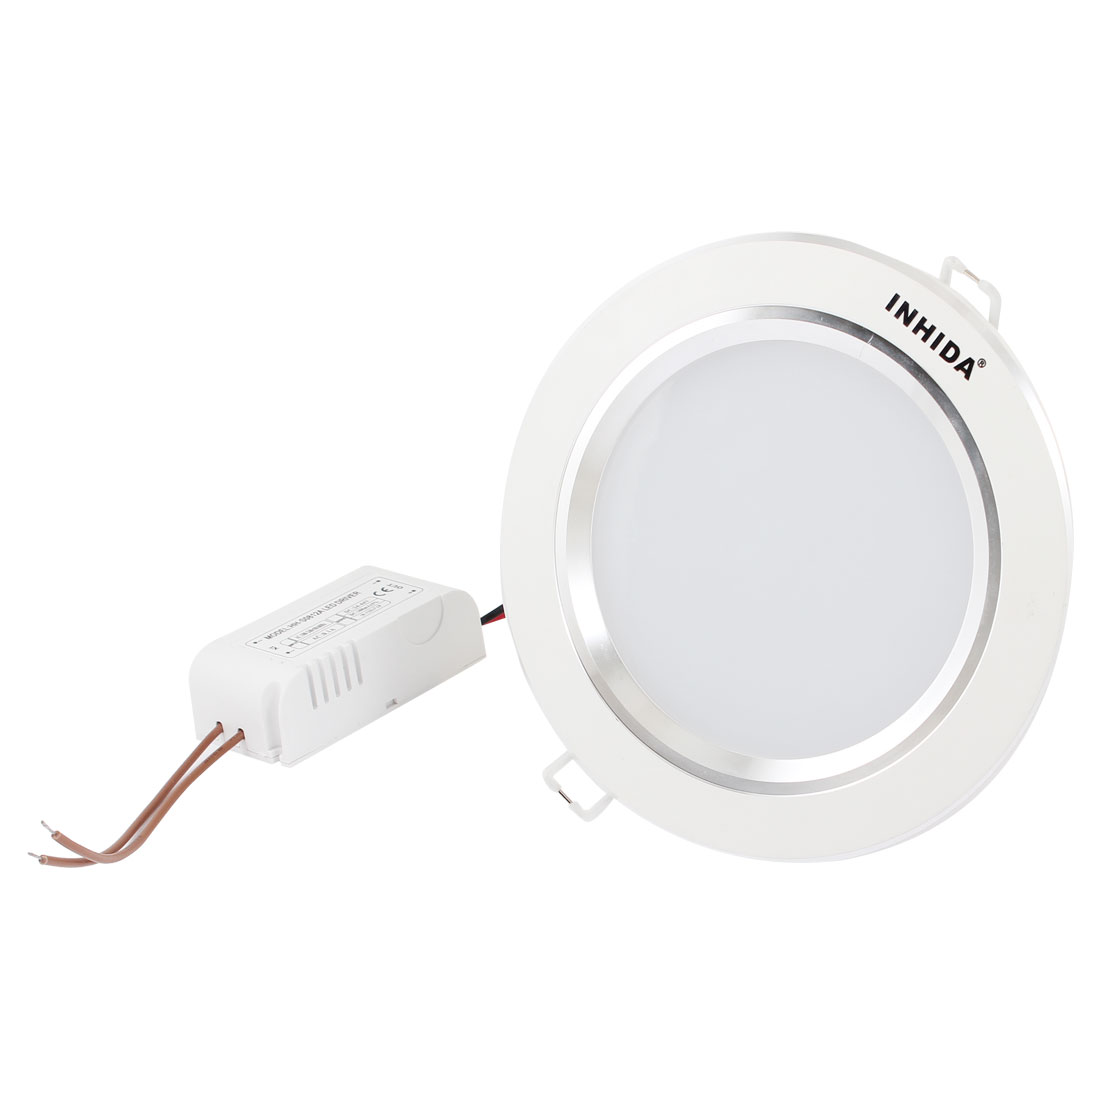 AC 100-240V 10W 3000-3200K Warm White LED Down Light Ceiling Lamp